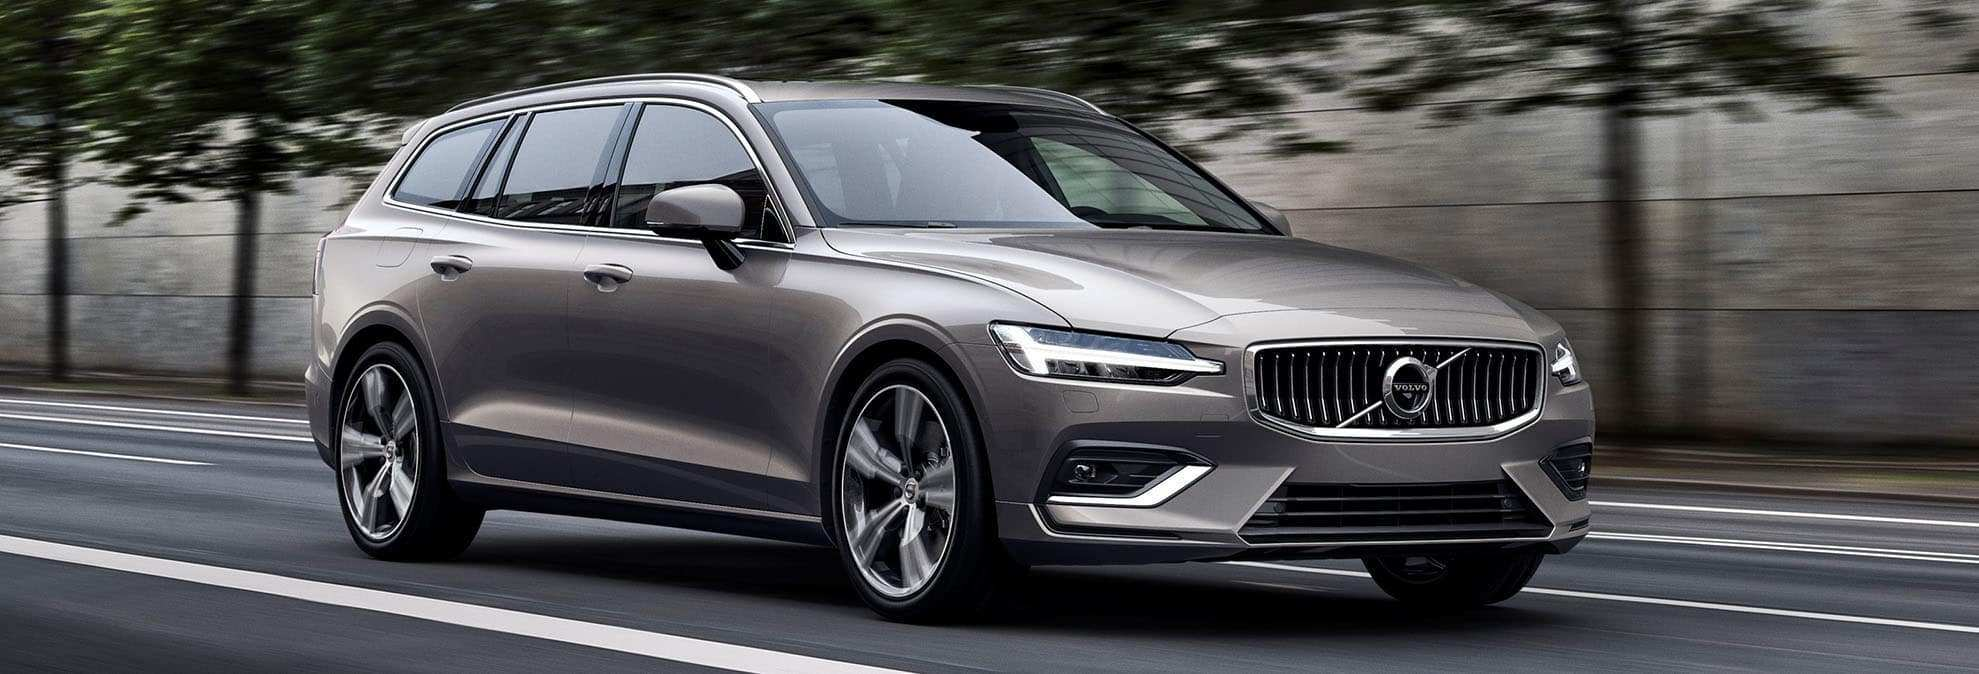 28 New Volvo 2019 Station Wagon Price And Release Date